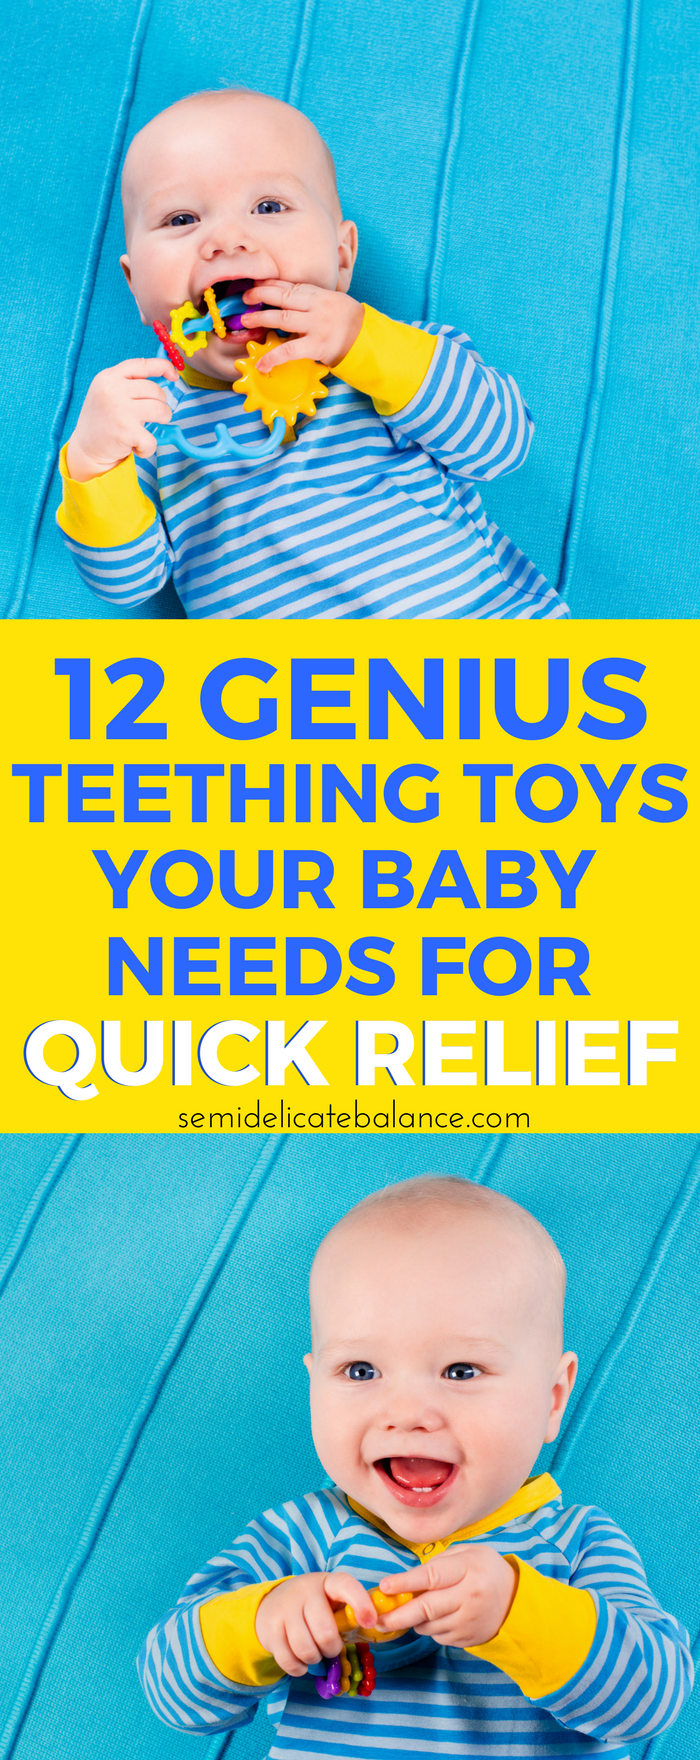 Genius Teething Toys Your Baby Needs For Instant Relief, Best Teethers for babies, Natural